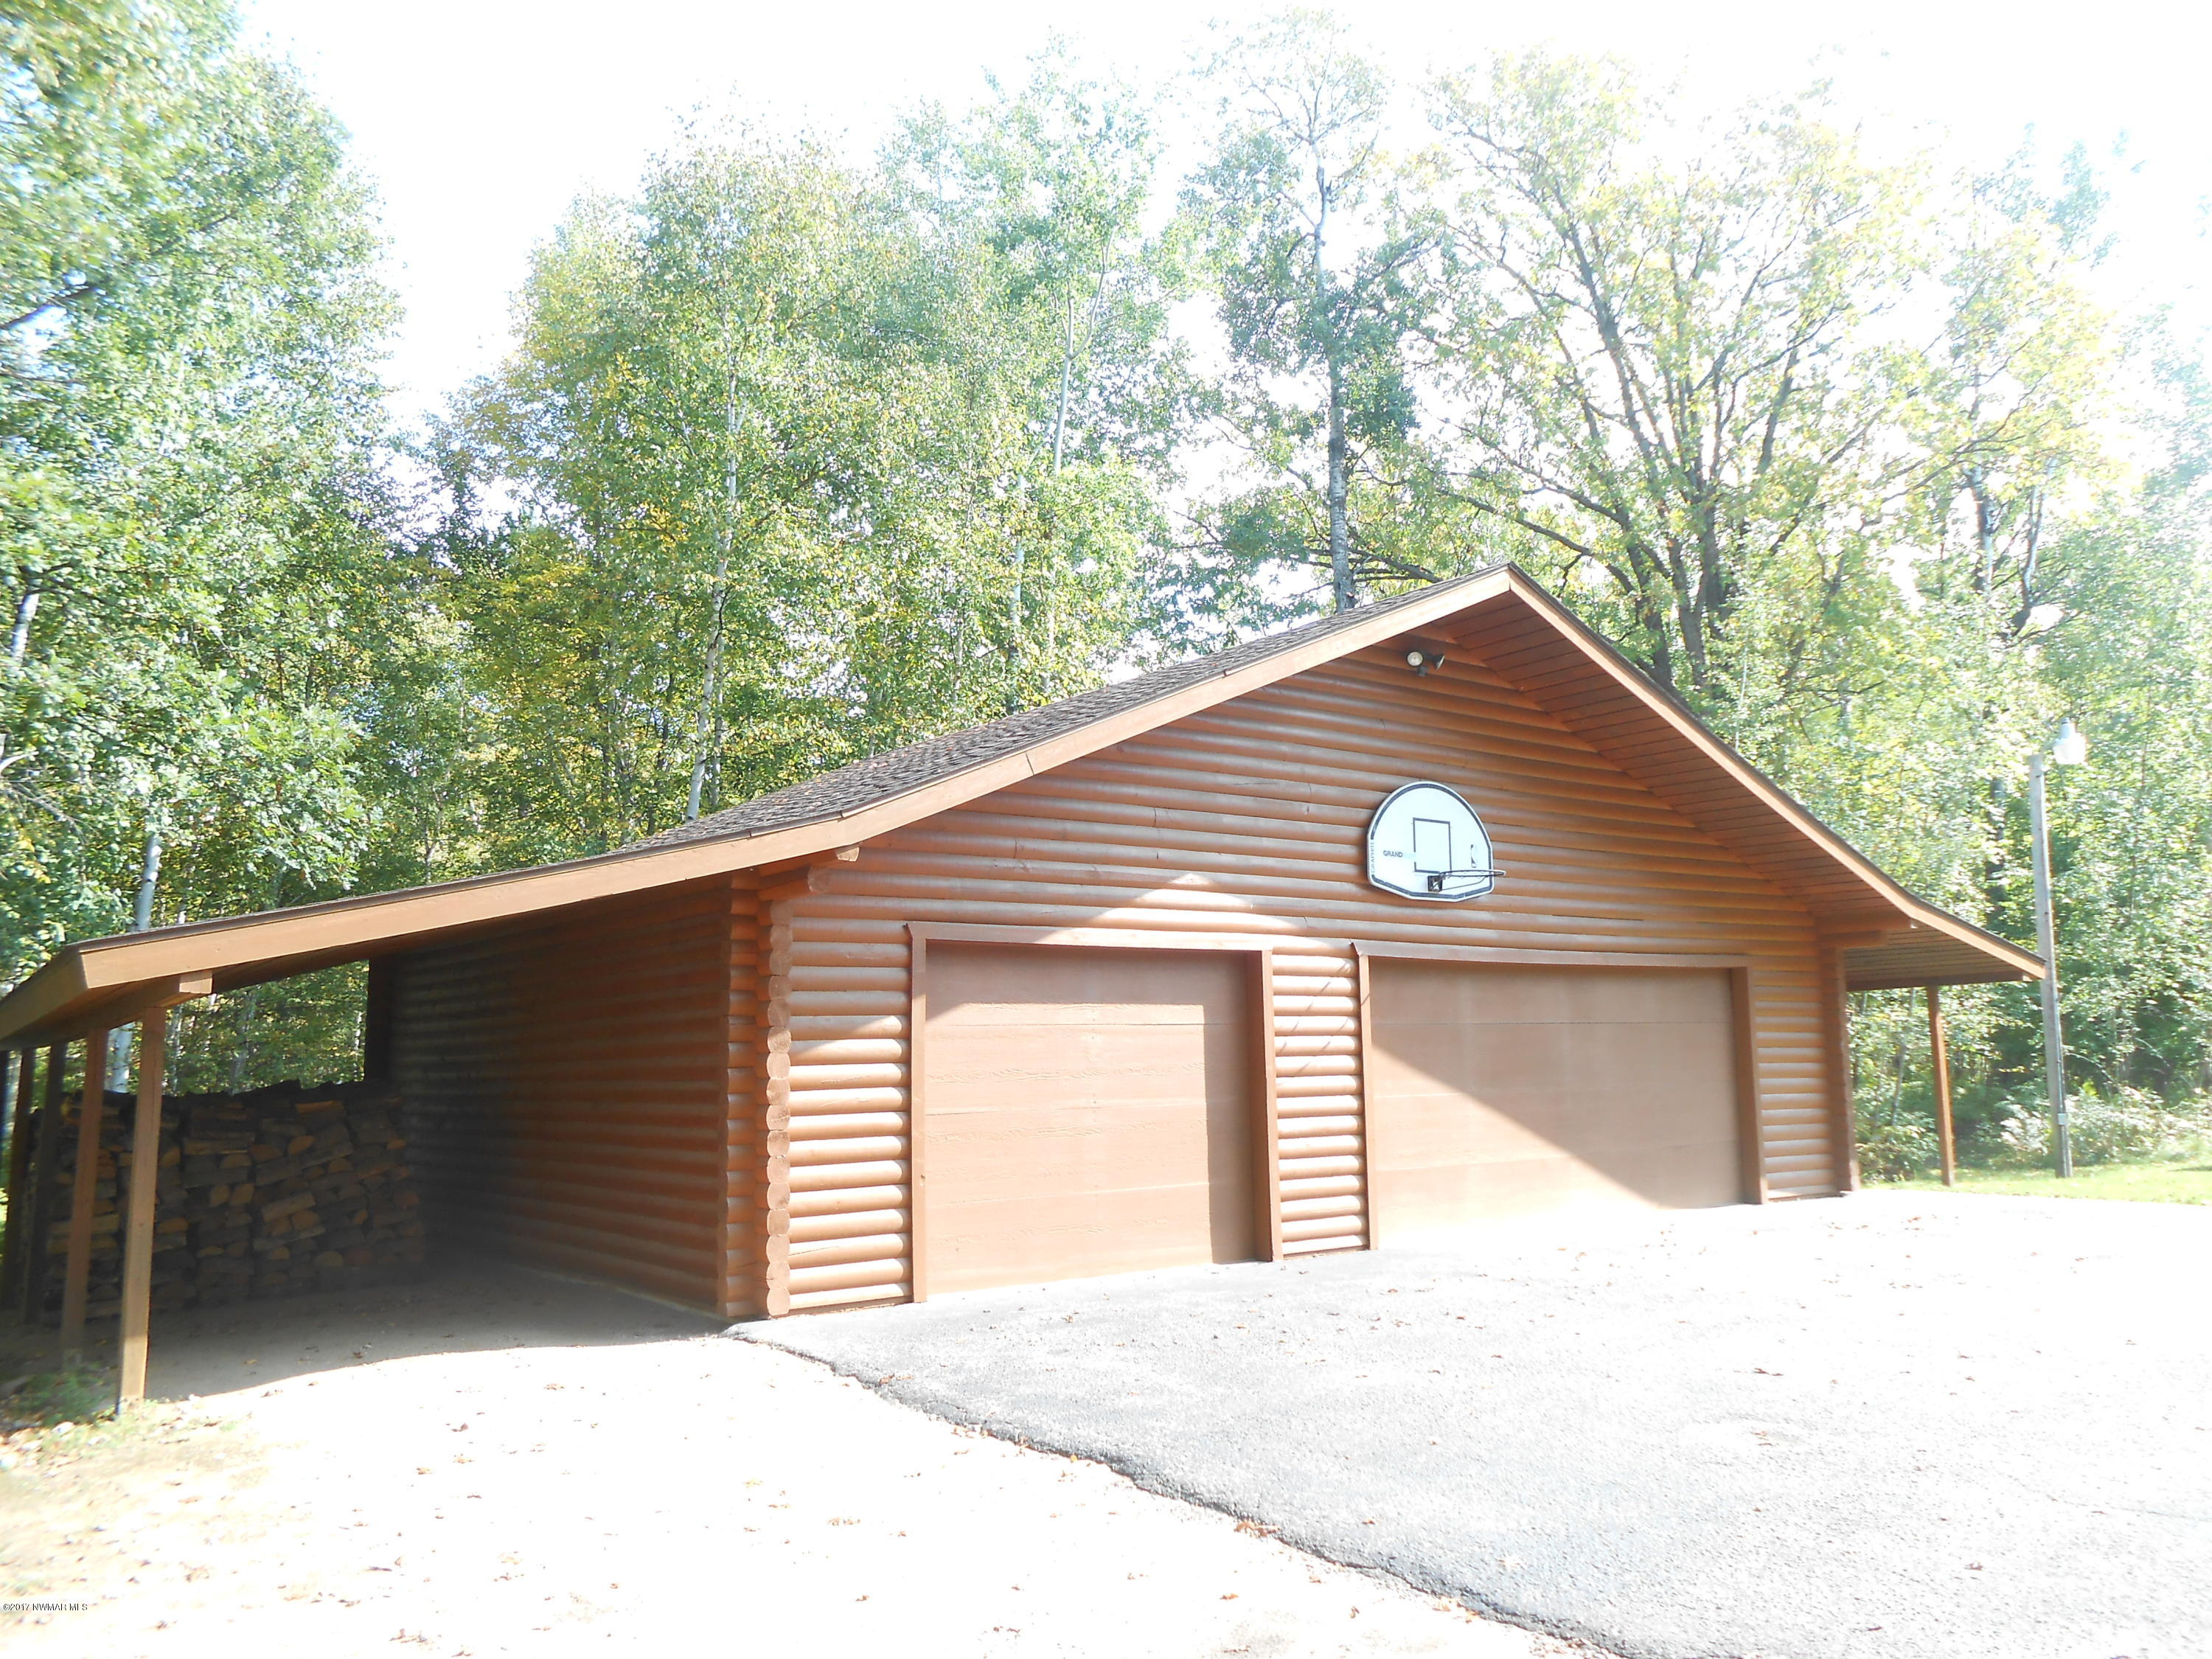 Lean-to on both sides of garage